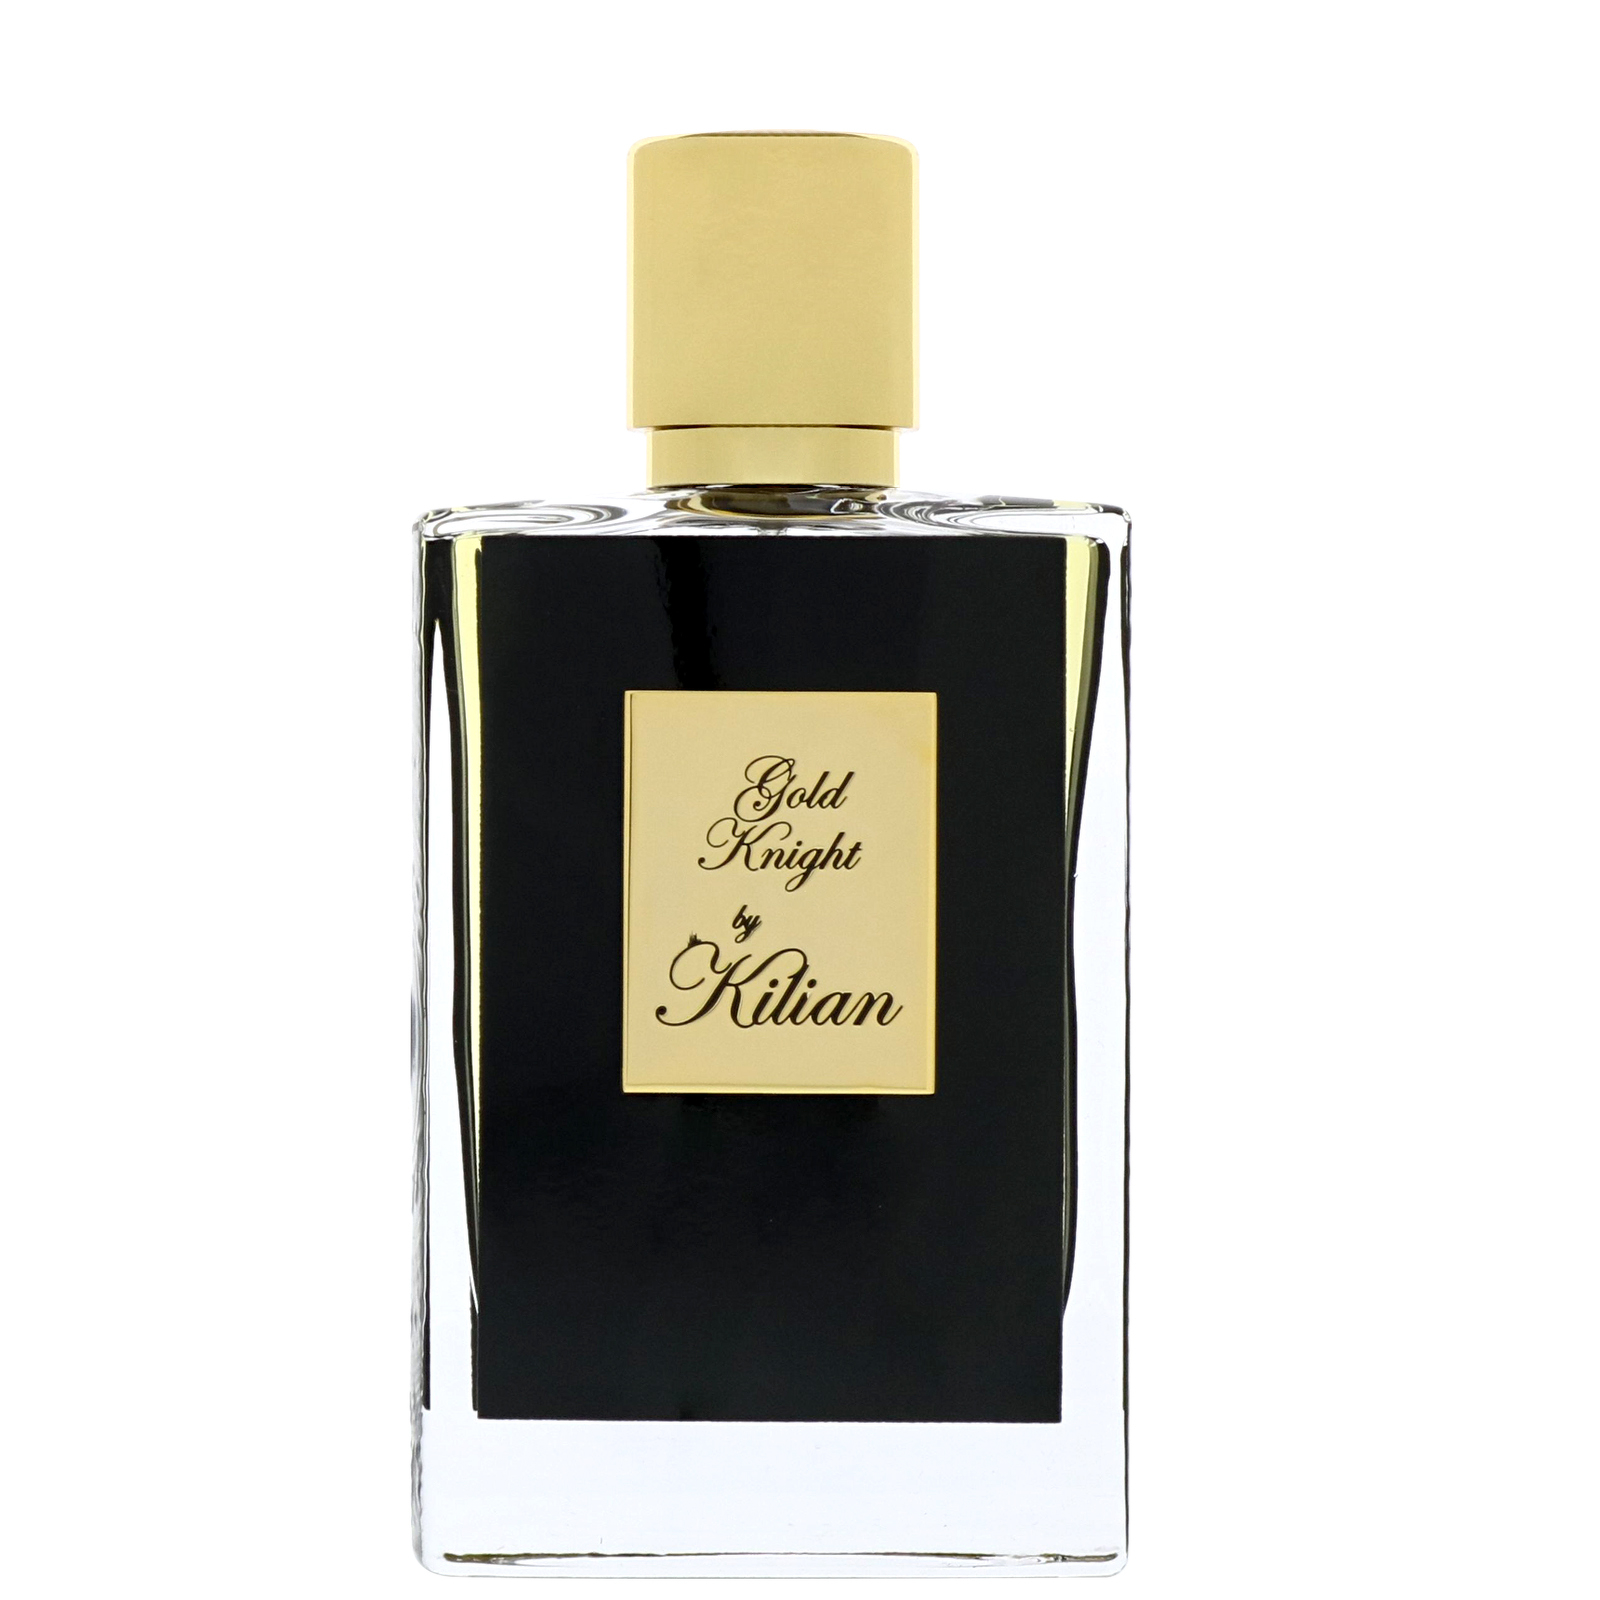 Kilian Gold Knight Eau de Parfum Refillable Spray 50ml